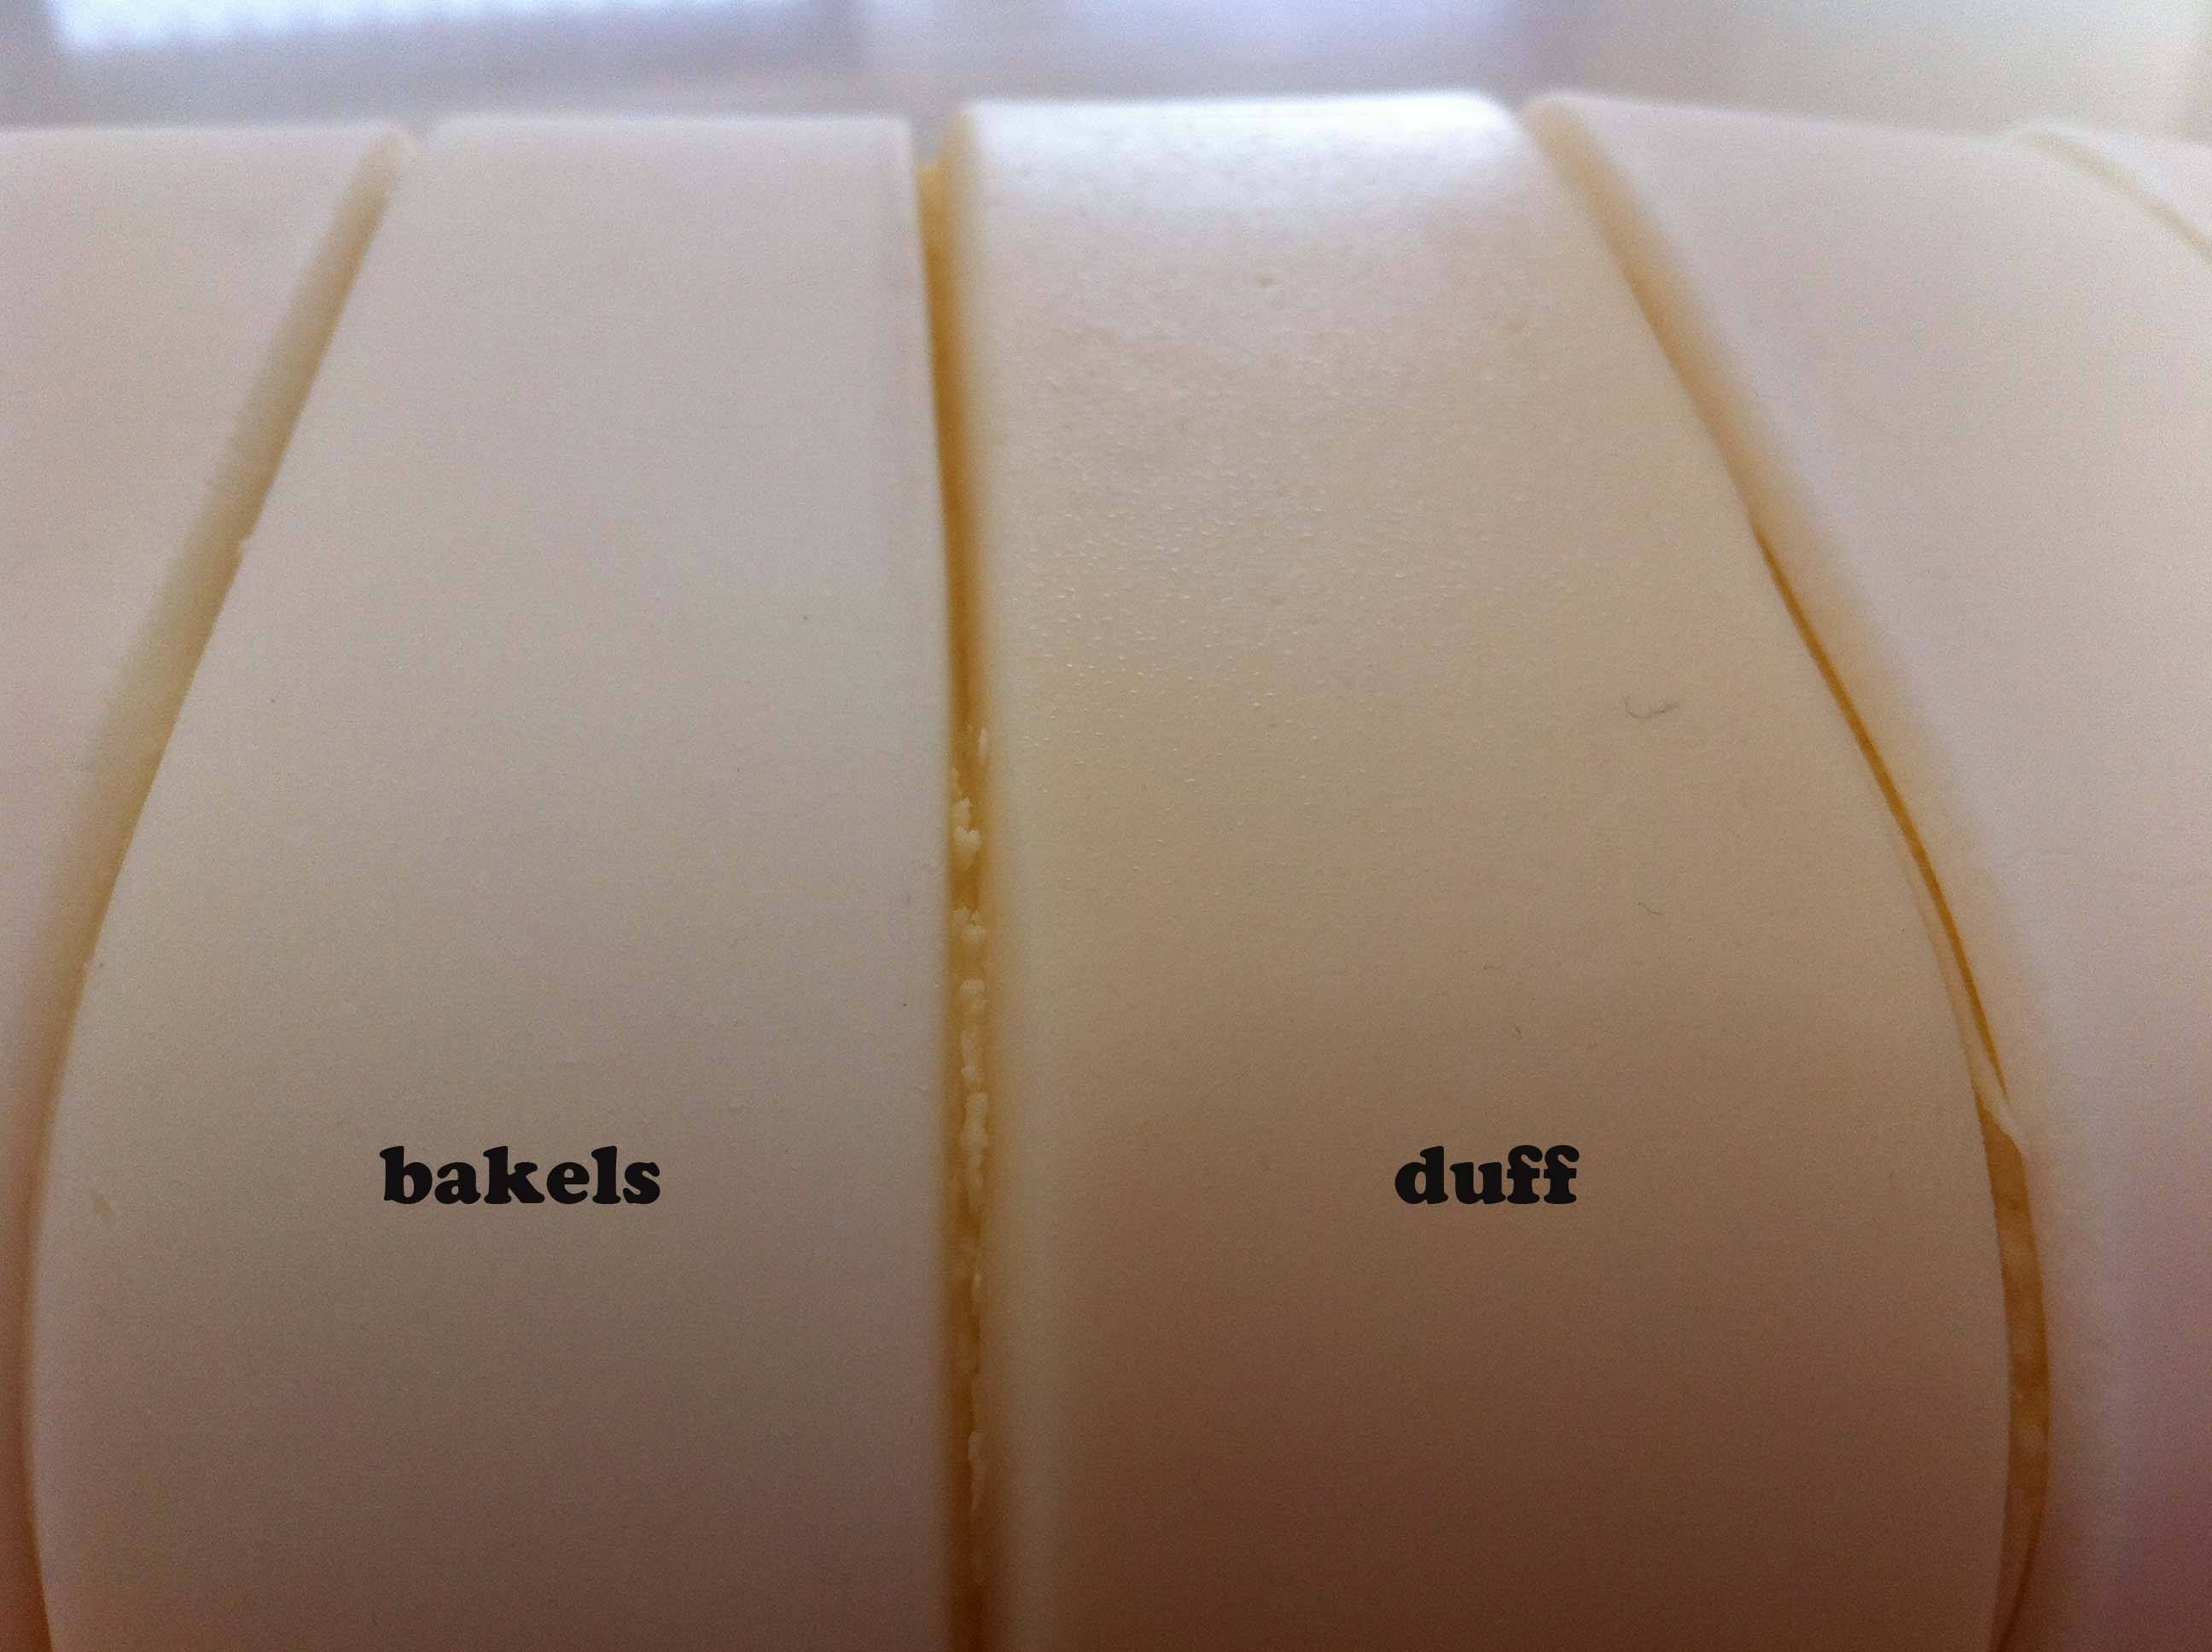 fondant review duff